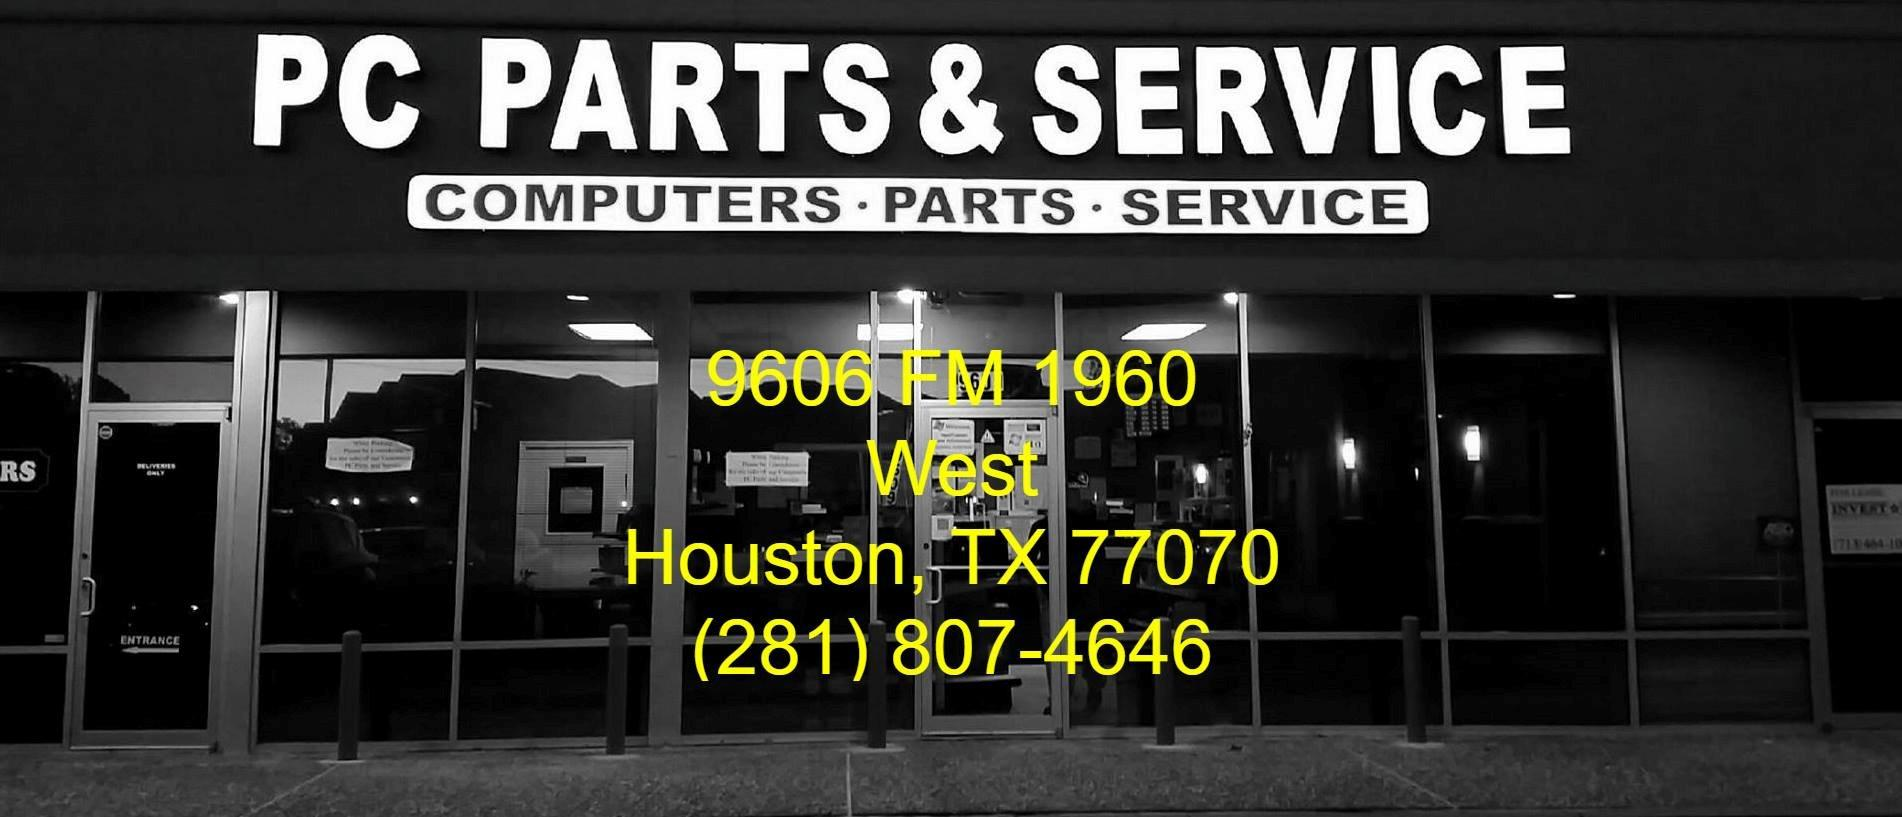 PC Parts and Service image 3